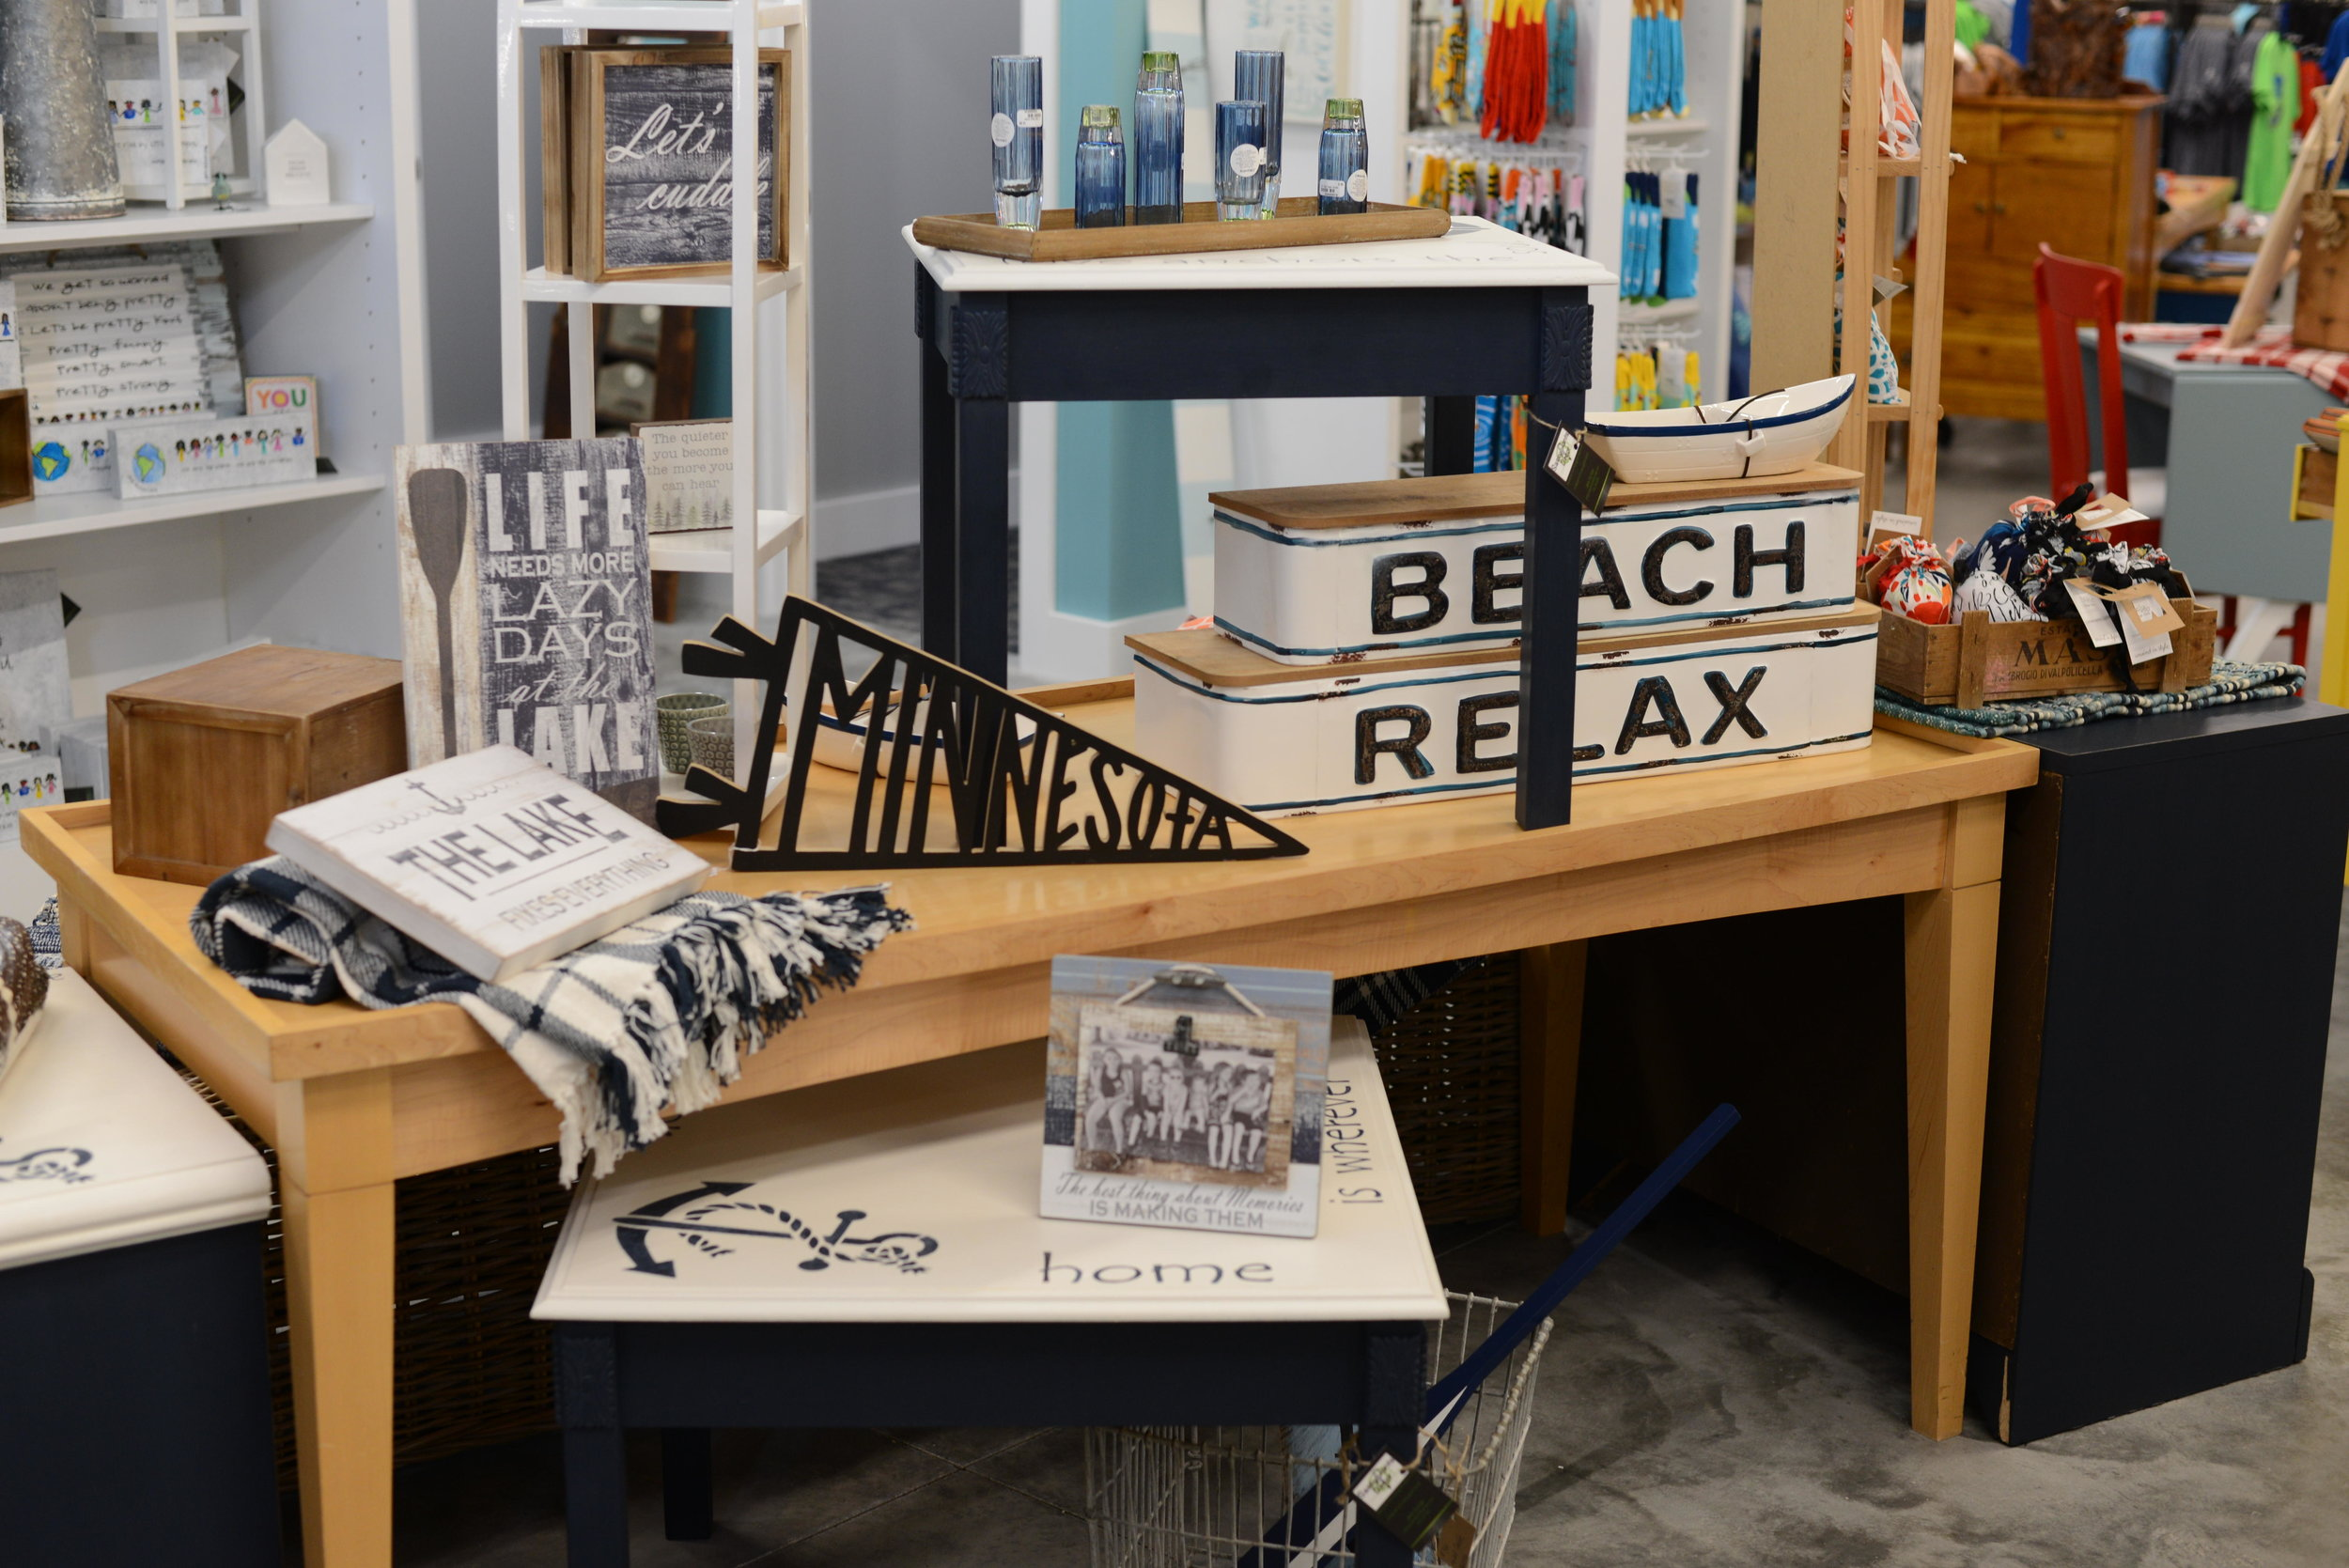 Periwinkle Marketplace has something for everyone. The new location has an expanded mens and kids section. (Carter Jones/ FOCUS)